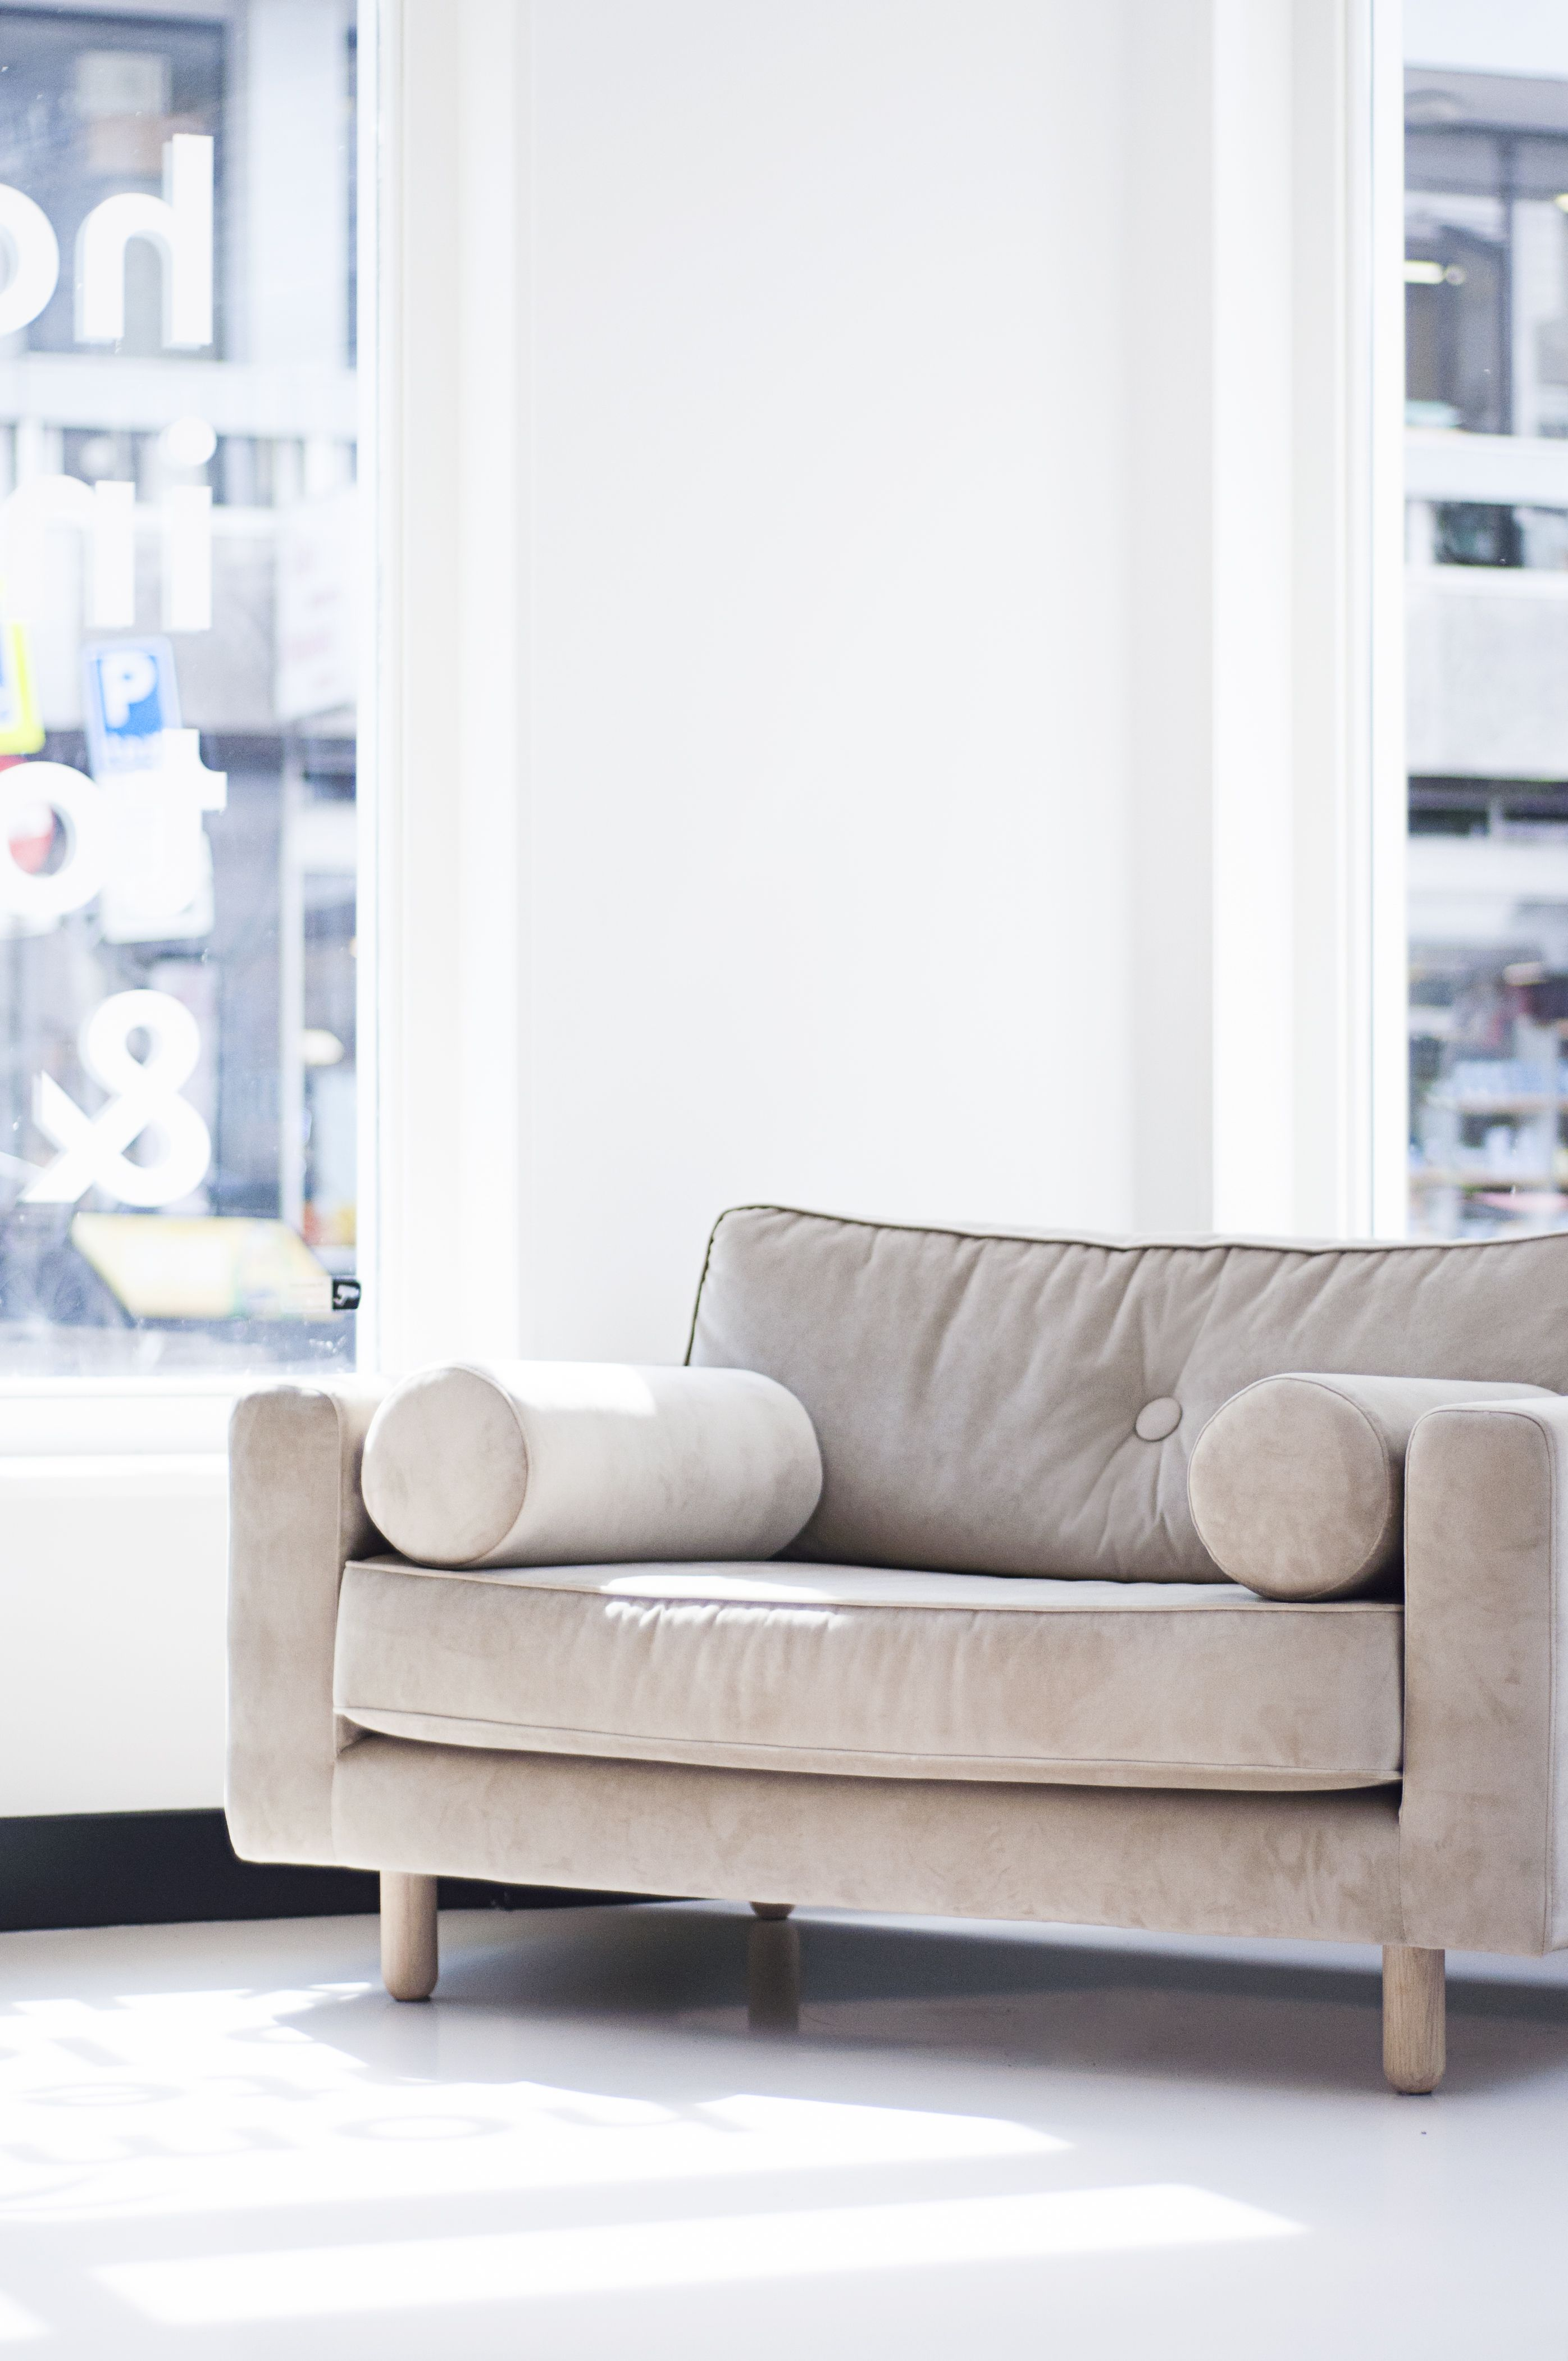 Fest Avenue Loveseat Photo By Elske Nissen Styling By Chantal Collette Stylish Sofa Bedroom Makeover Home Decor What is a love seat